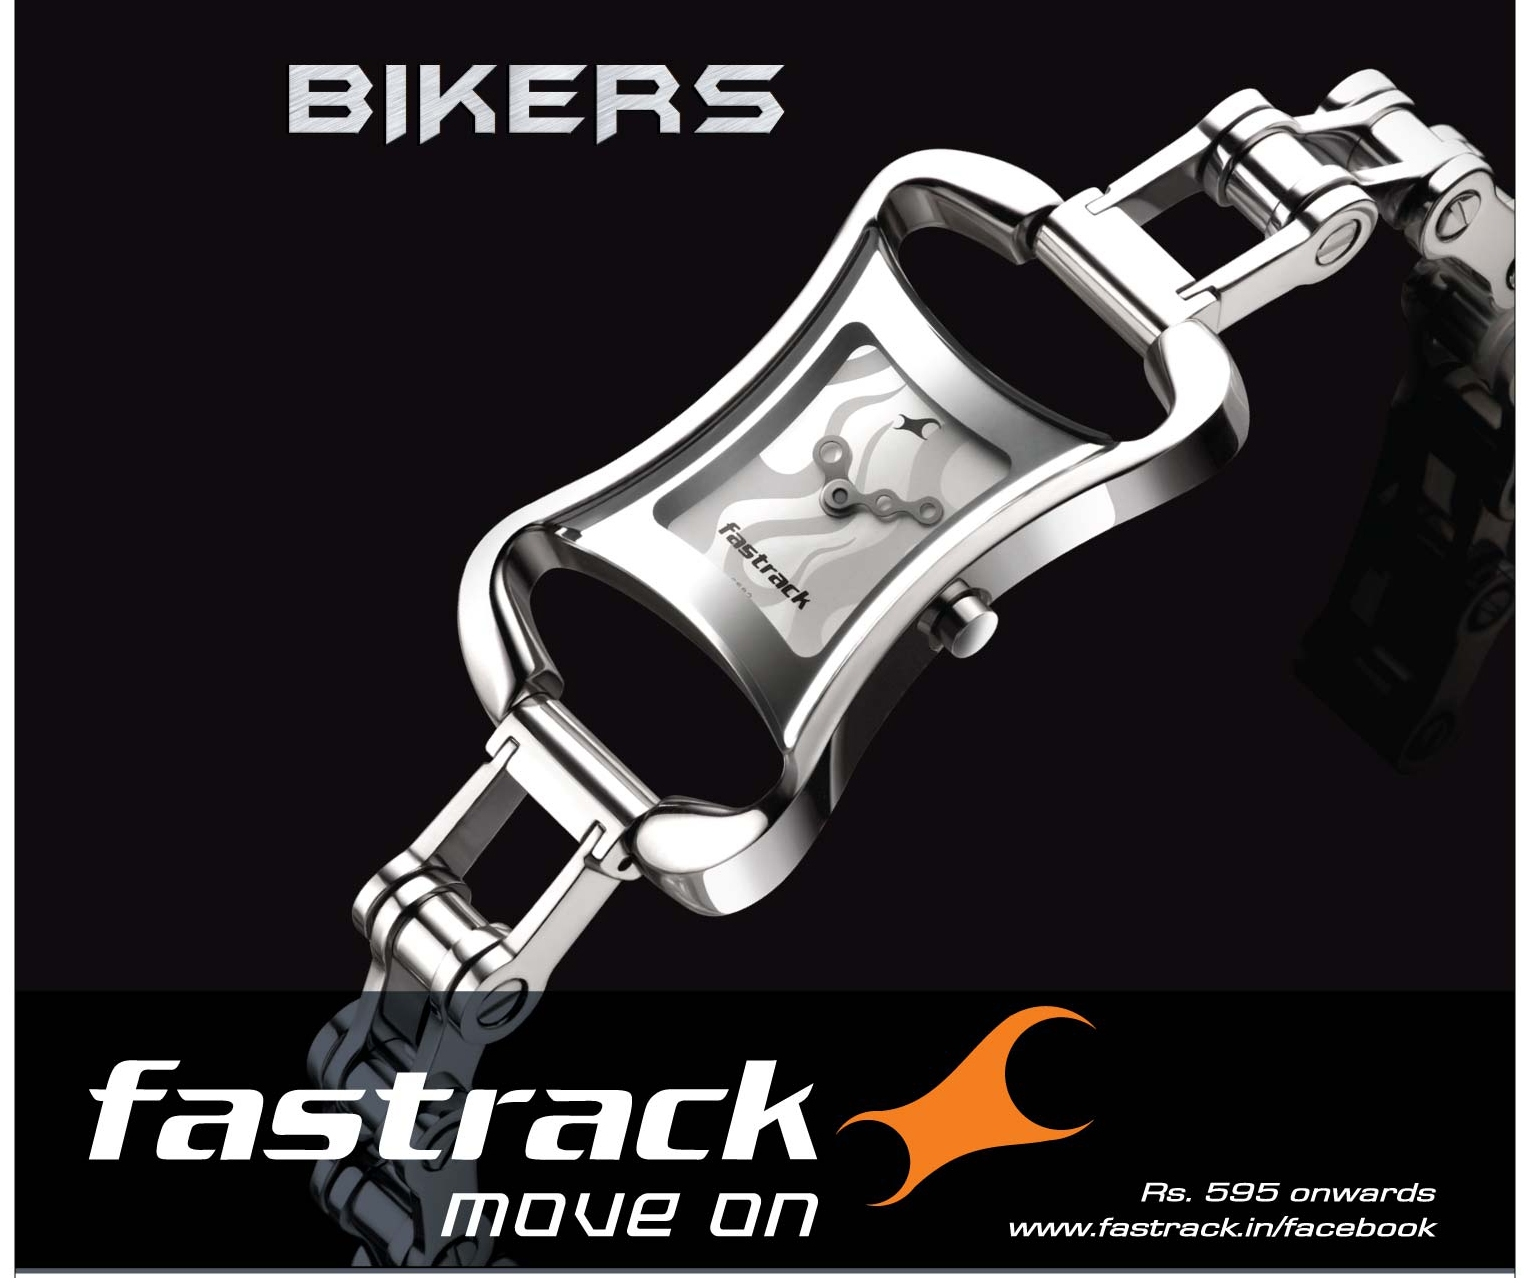 fastrack bikers review fastrack bikers for girls